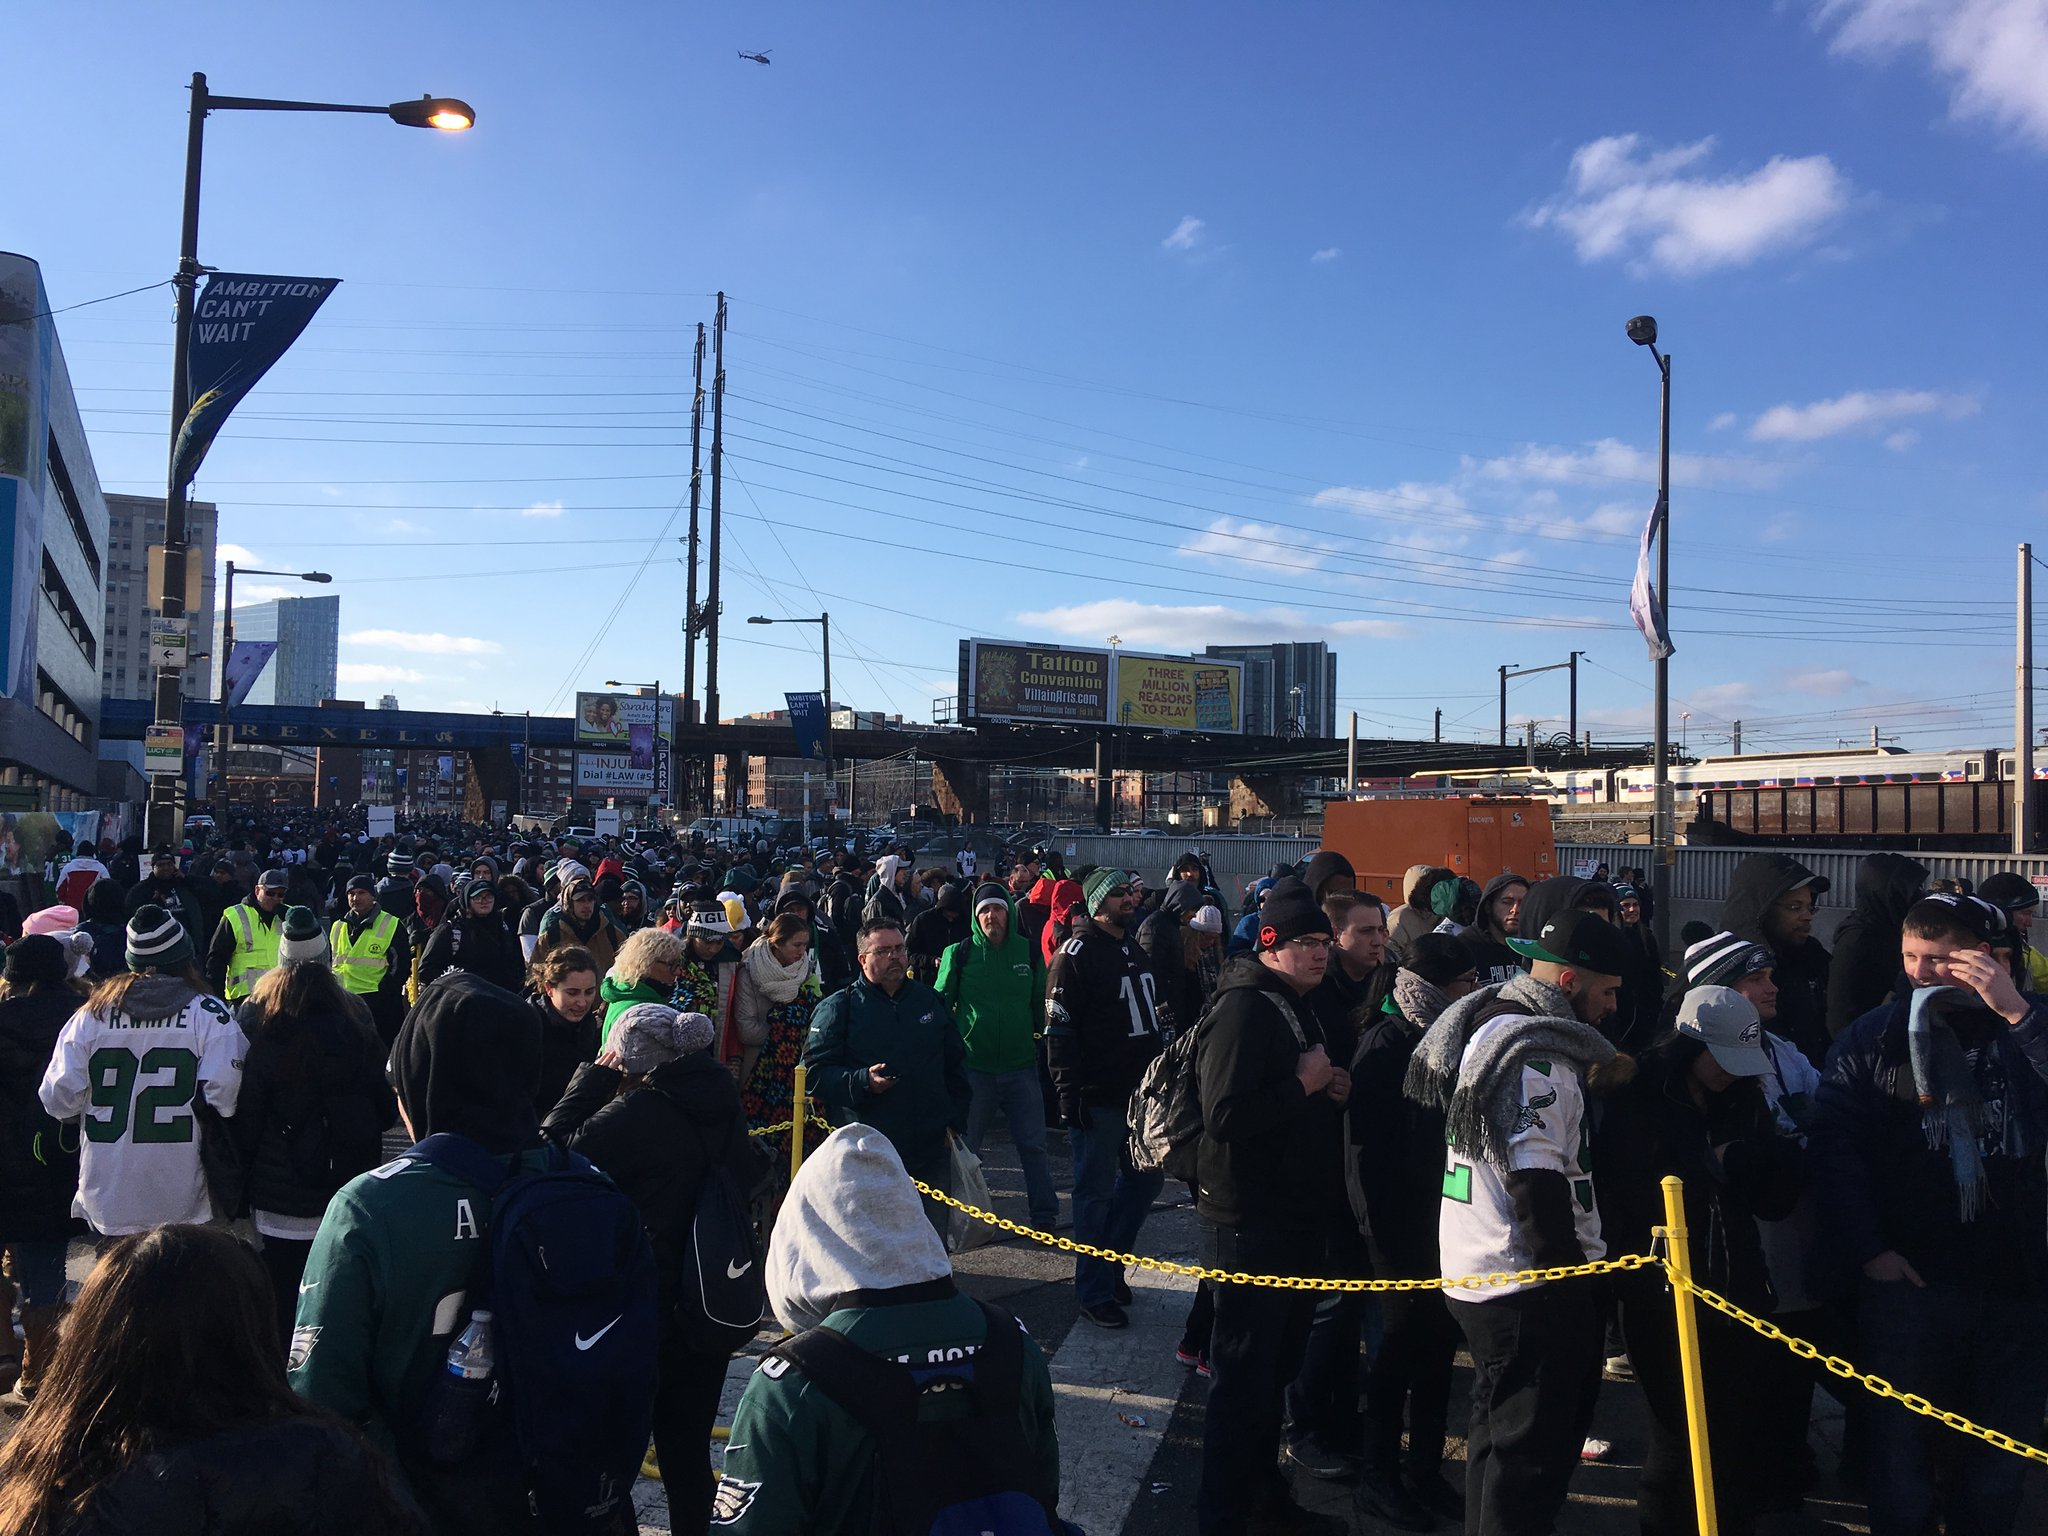 Eagles paradegoers wait in line to get into 30th Street Station. Credit: Jim Saksa/WHYY